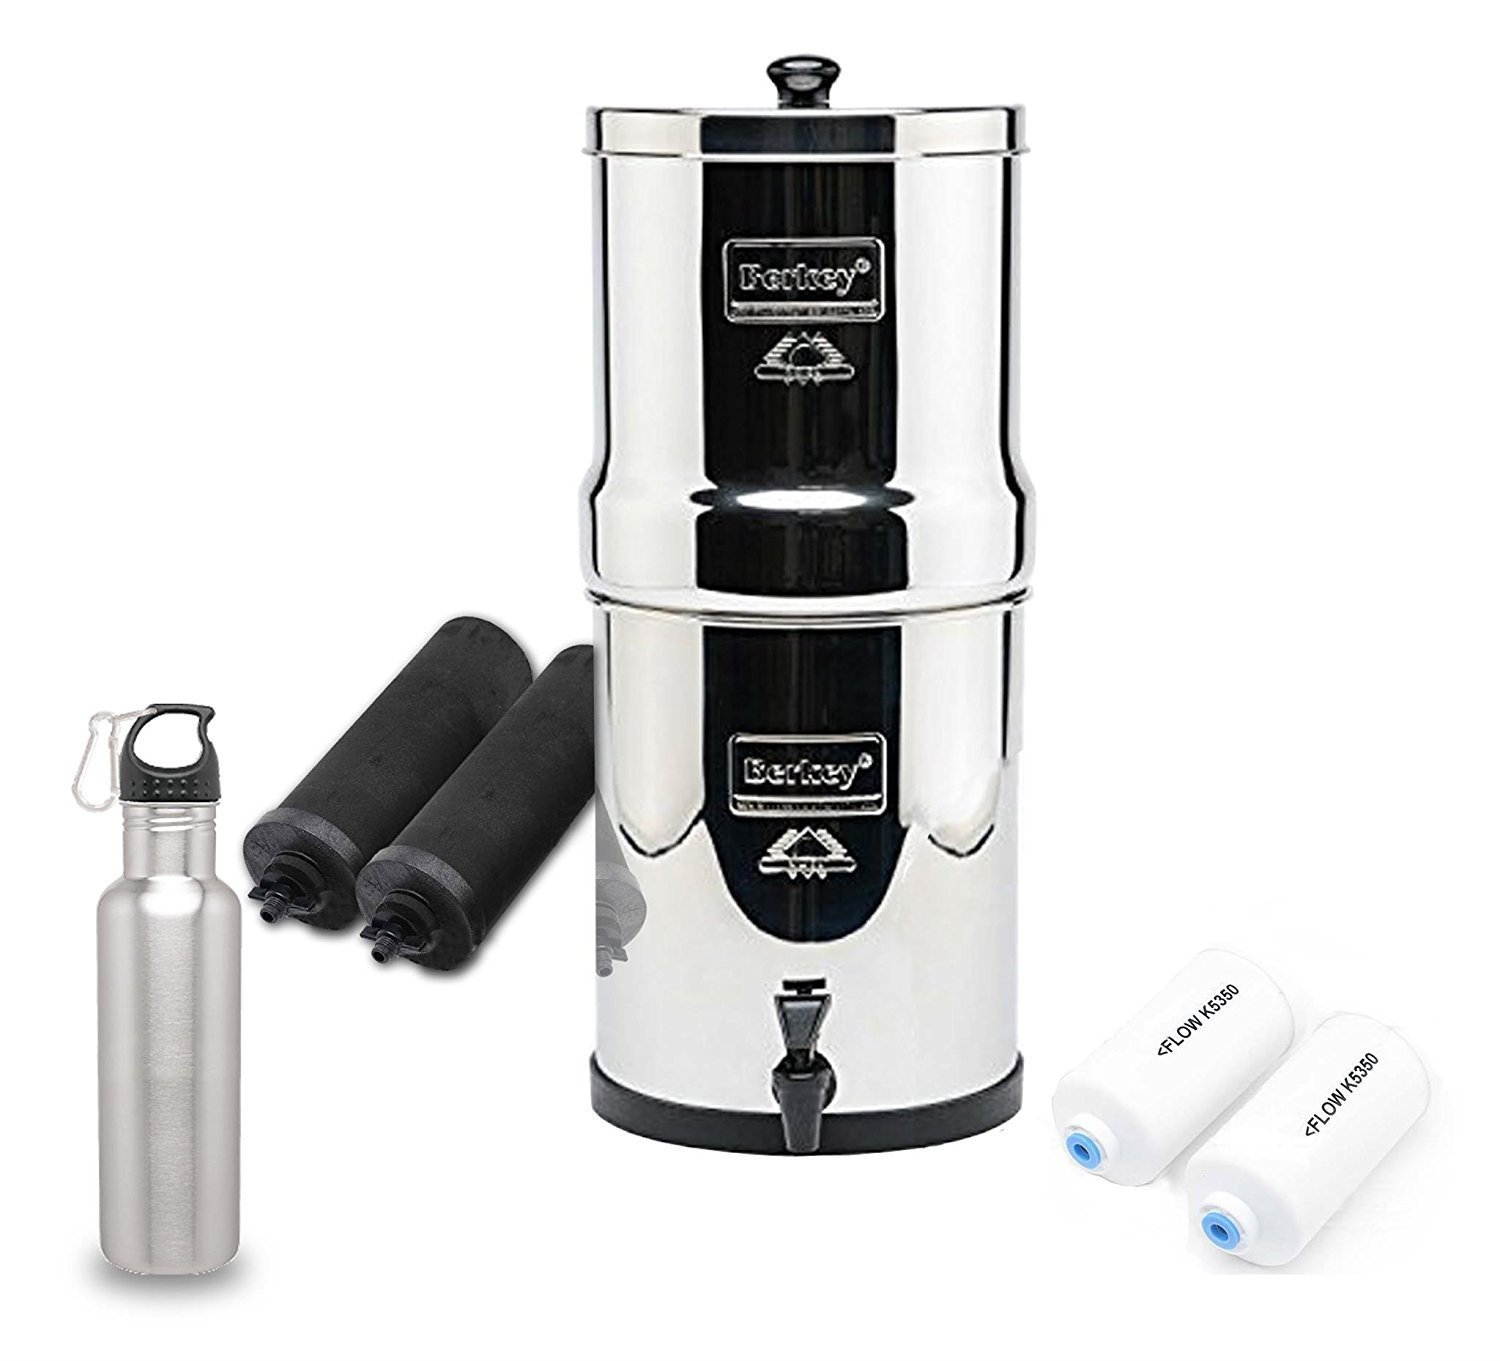 Big Berkey Water Filter System Black Purifier Filters